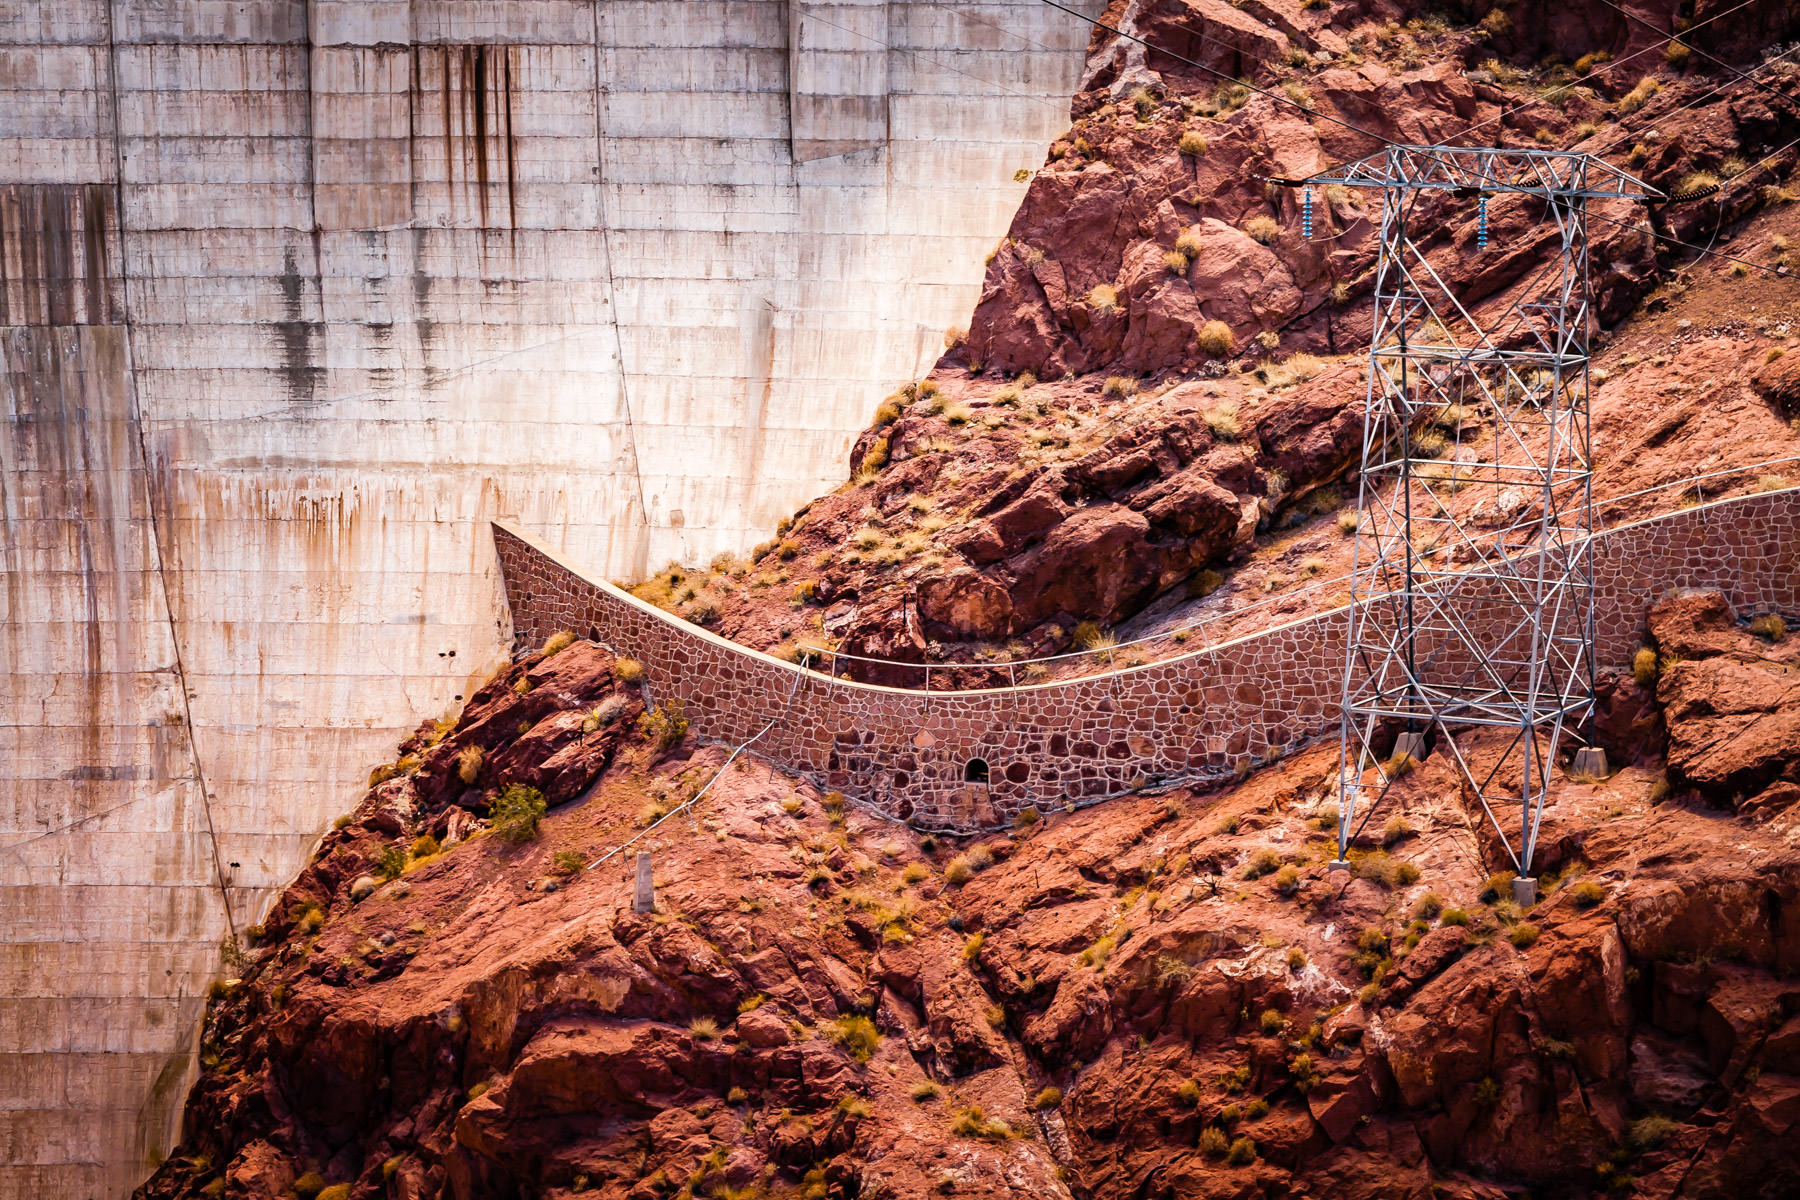 A rock retaining wall and electrical tower next to downstream face of Hoover Dam.